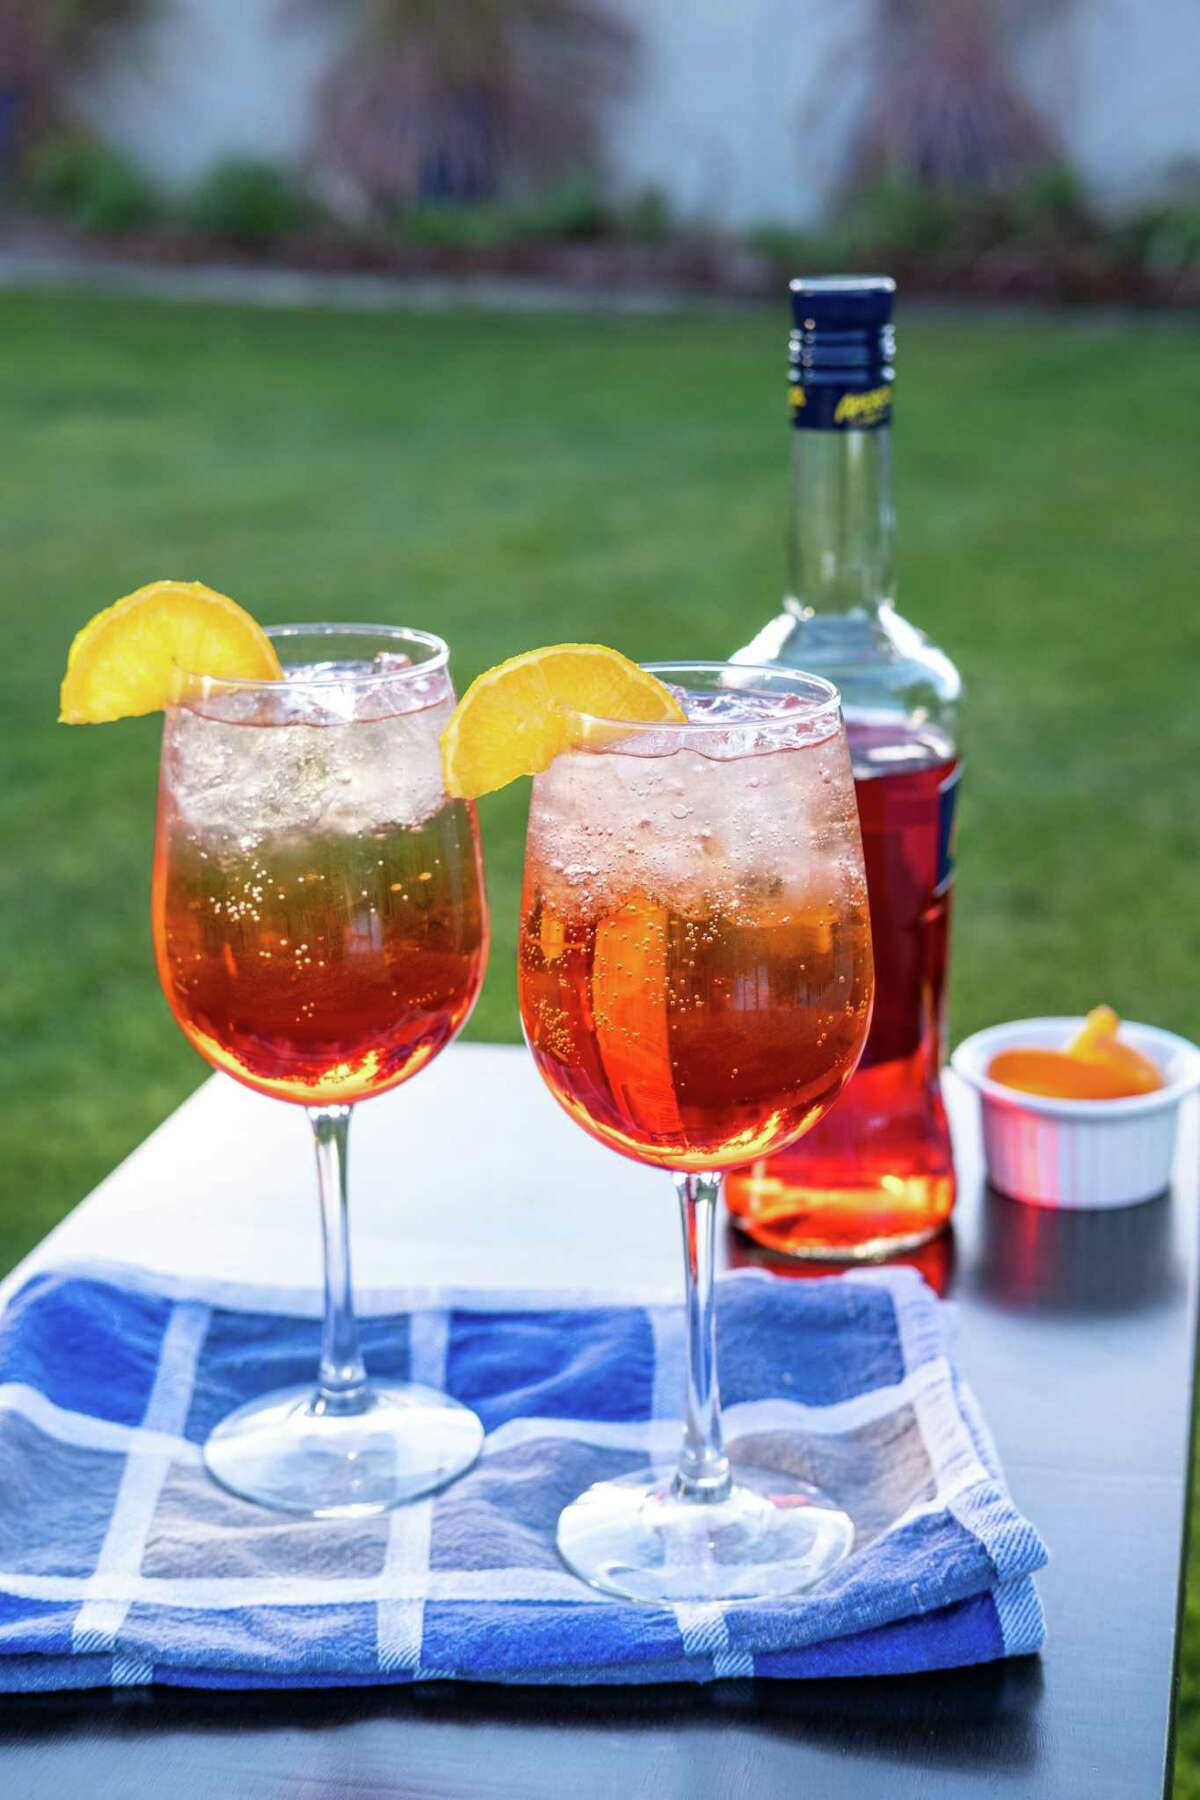 """The Aperol Spritz from """"The Hard Seltzer Cocktail Book: 55 Unofficial Recipes for White Claw Slushies, Truly Mixers, and More Spiked-Seltzer Drinks"""" (Ulysses Press) by Casie Vogel."""